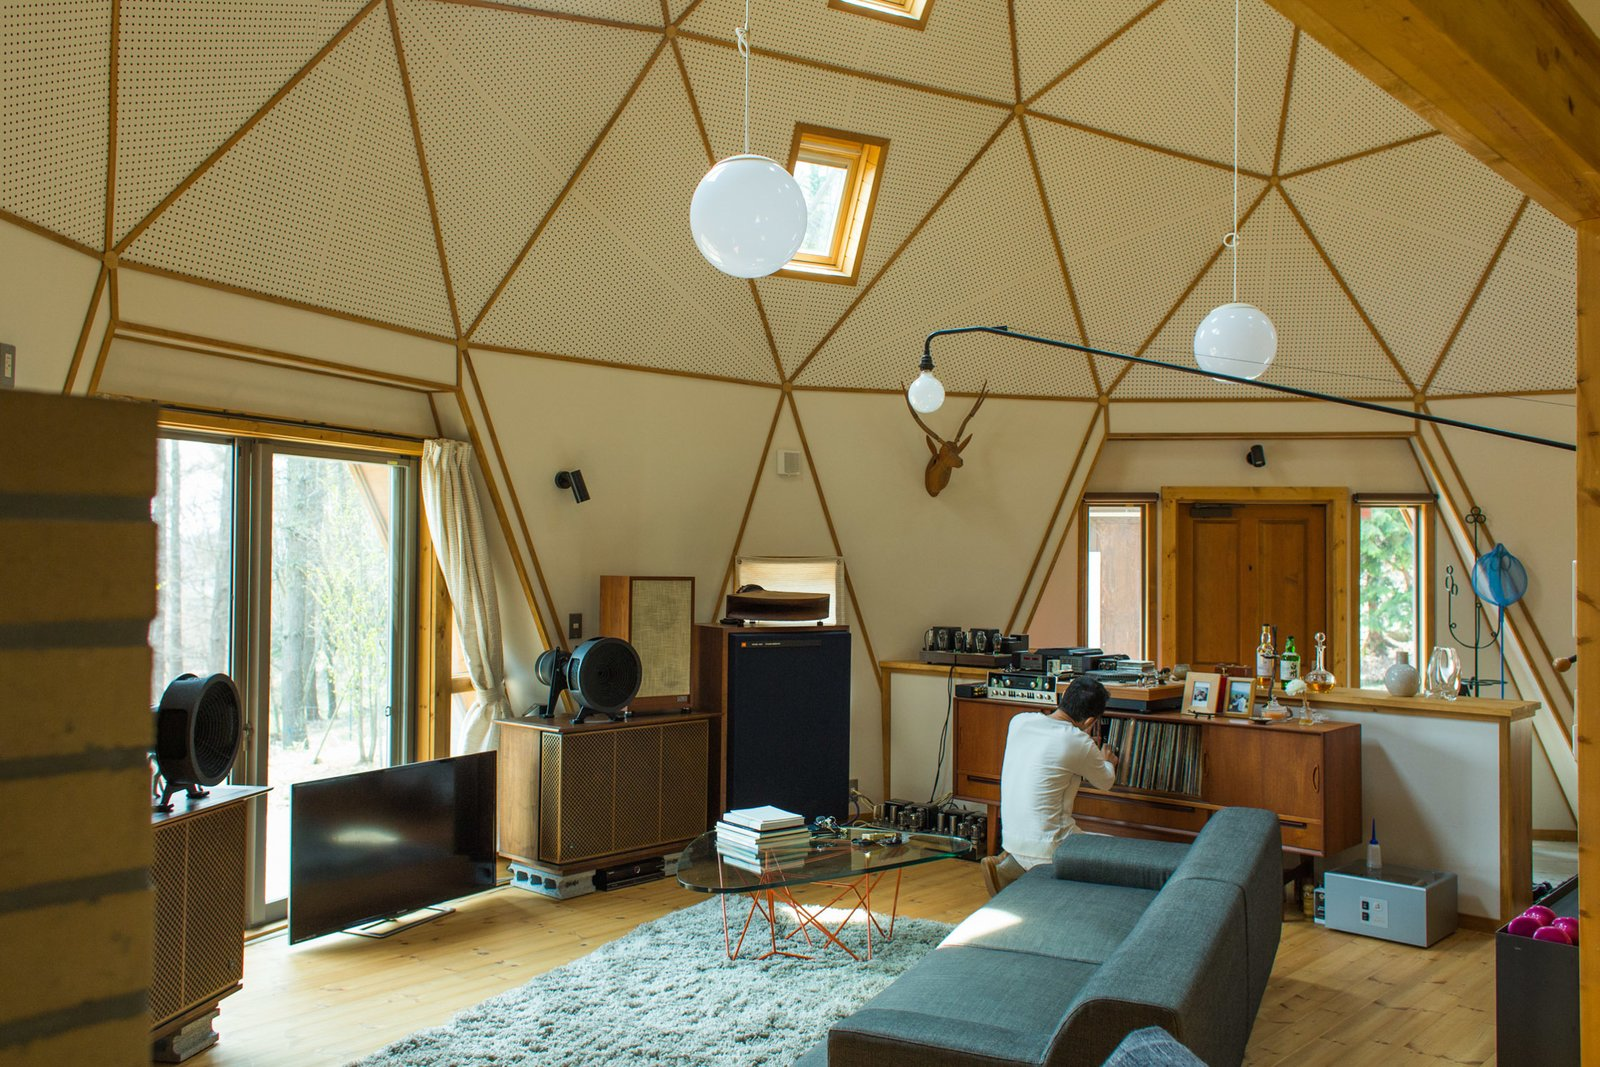 """It was always my dream to own my own audio set-up, and in my 50s – when I was finally able to build my own home – that audio dream came true,"" Hasui says.  Photo 1 of 1 in How To Install A Home Audio System With Remote Control Access On Your Own? from Tiny and Cozy Home in a Geodesic Dome"